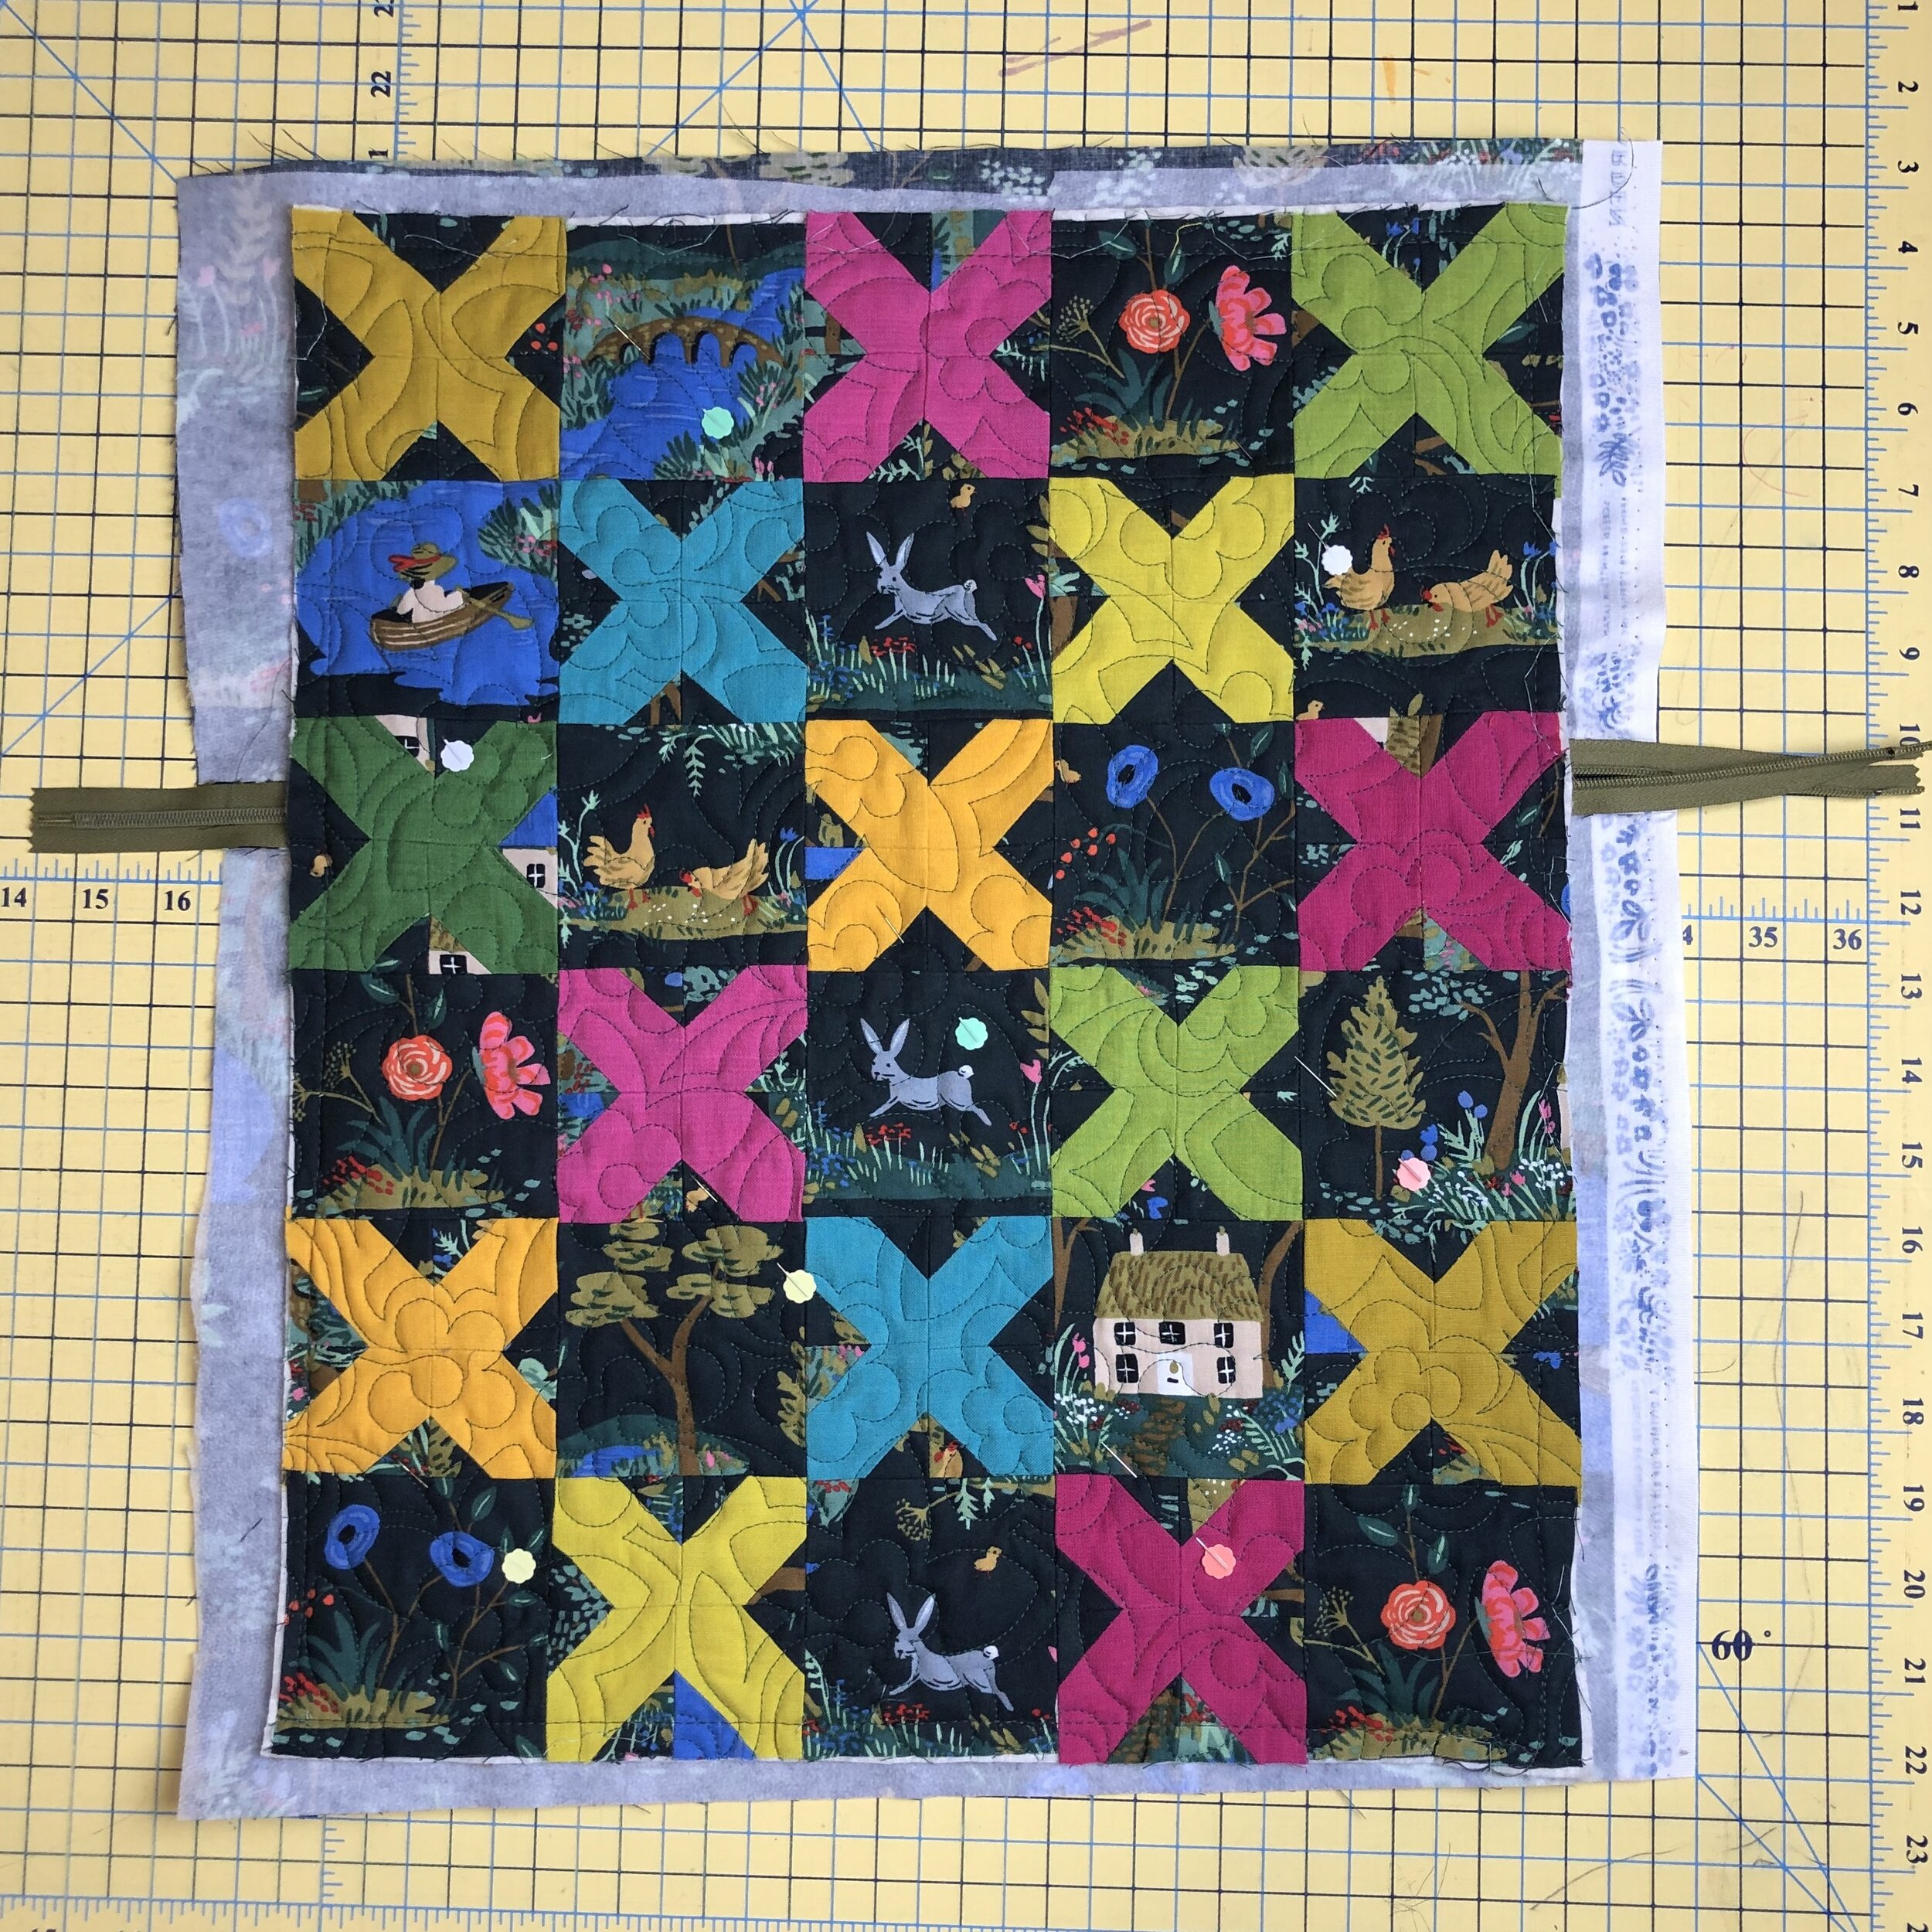 - 4. Sew around all 4 sides with a basting stitch. This doesn't need to be beautiful or at a set distance from the edge- it just needs to hold everything so you can bind without struggling. You will remove it later.